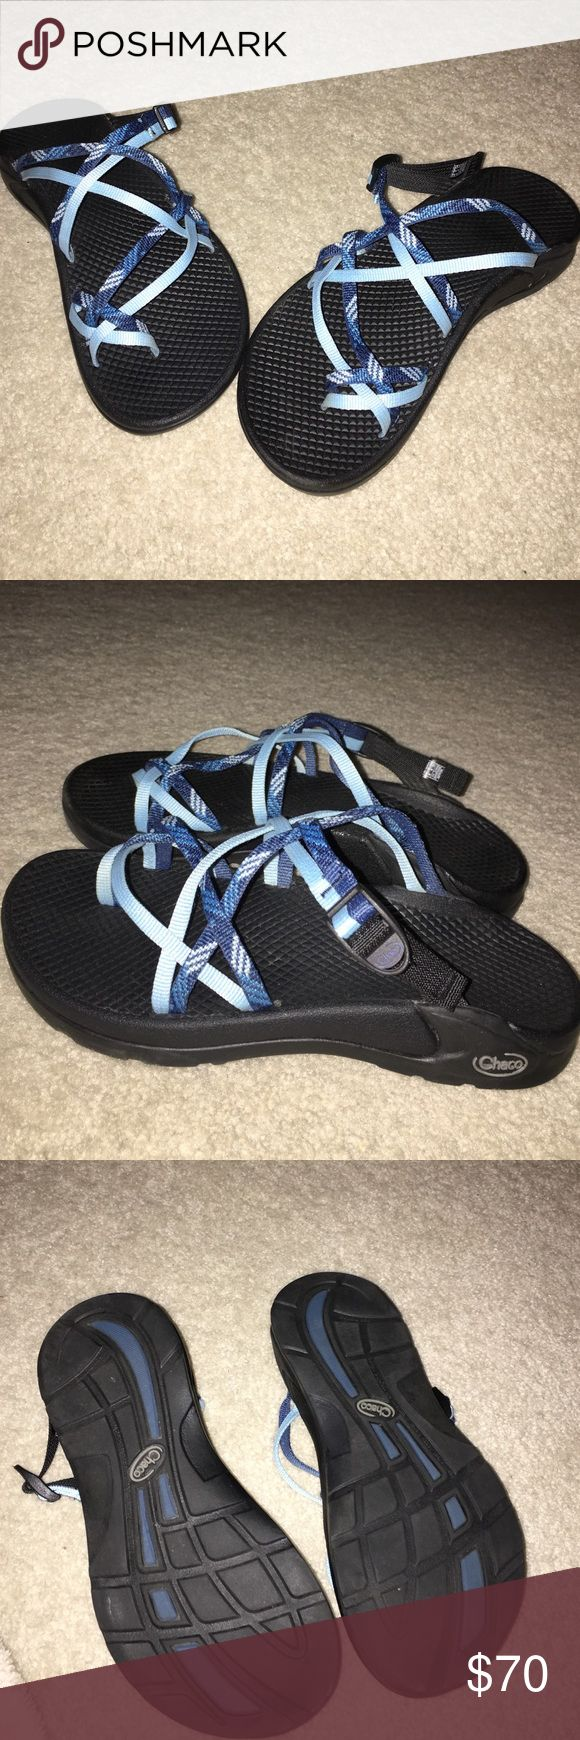 SOLD???Women's chacos